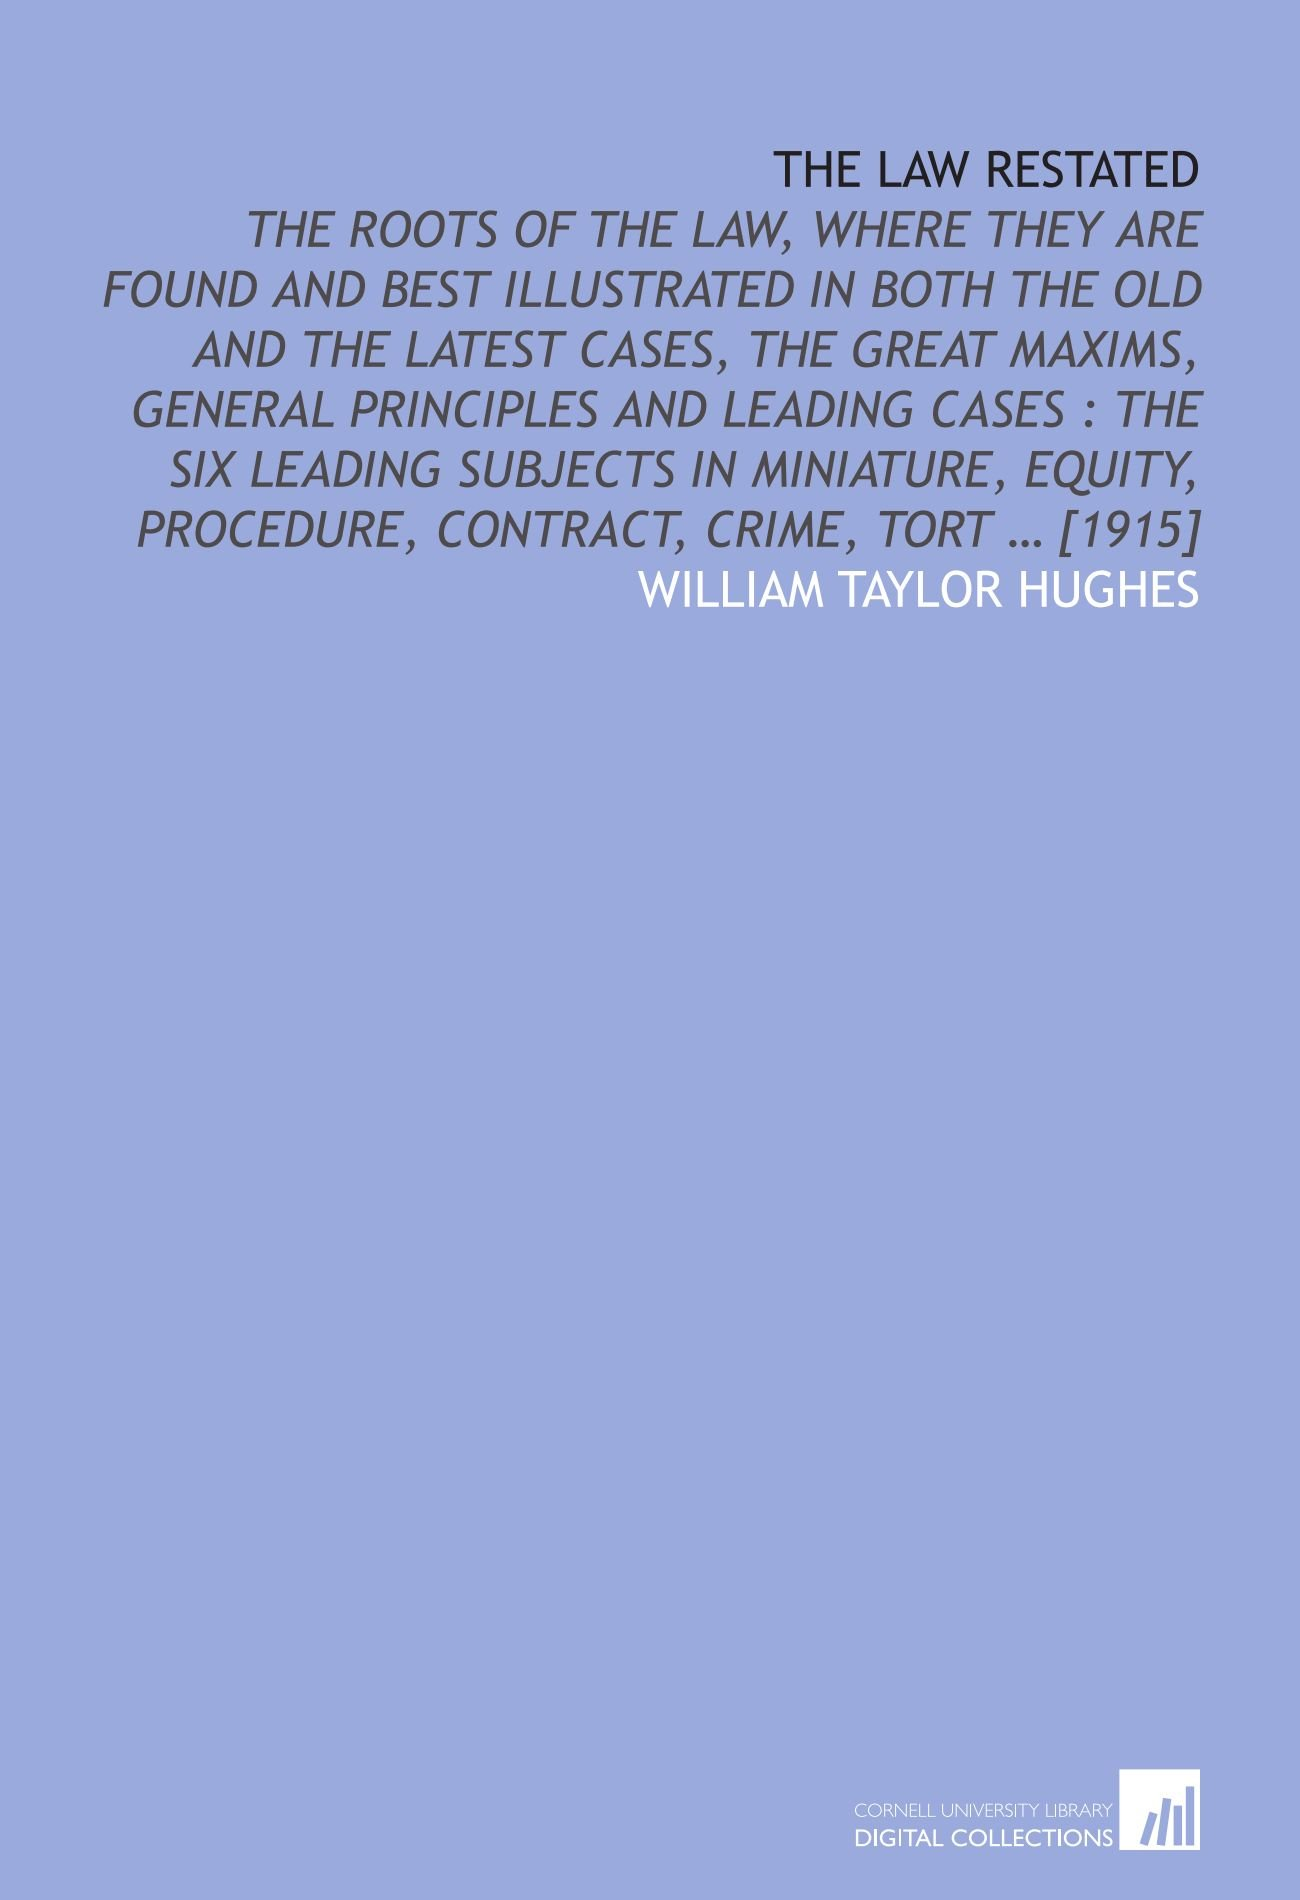 Read Online The law restated: the roots of the law, where they are found and best illustrated in both the old and the latest cases, the great maxims, general ... procedure, contract, crime, tort … [1915] pdf